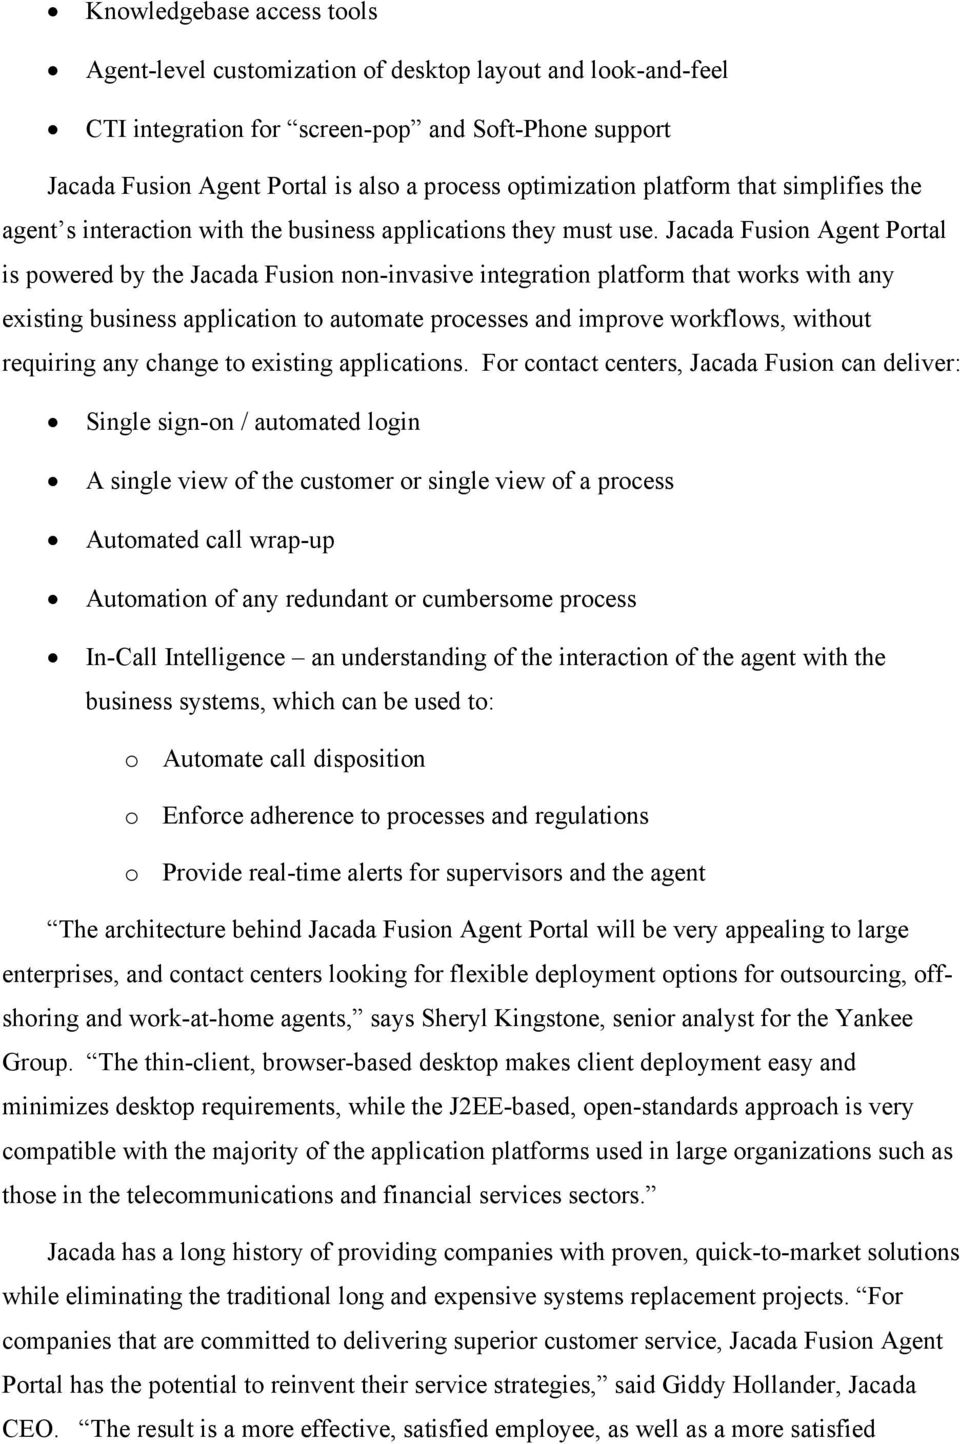 Jacada Fusion Agent Portal is powered by the Jacada Fusion non-invasive integration platform that works with any existing business application to automate processes and improve workflows, without